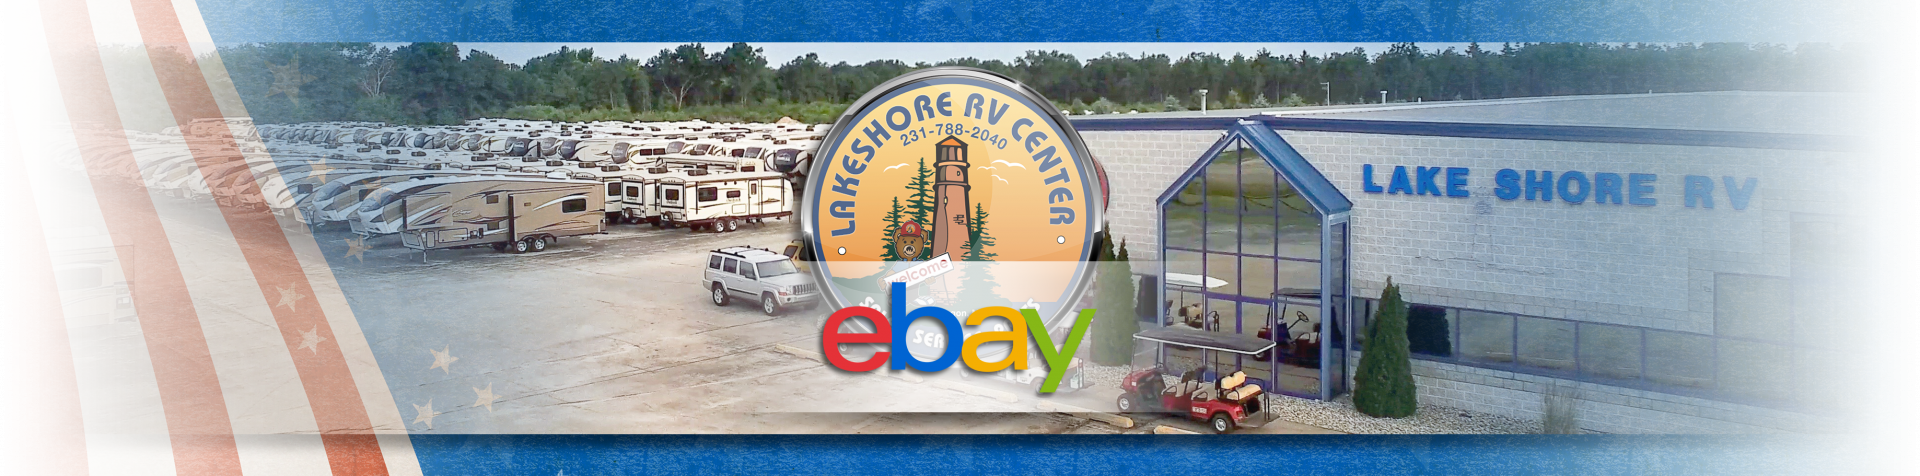 Lakeshore RV Center Ebay America Sale